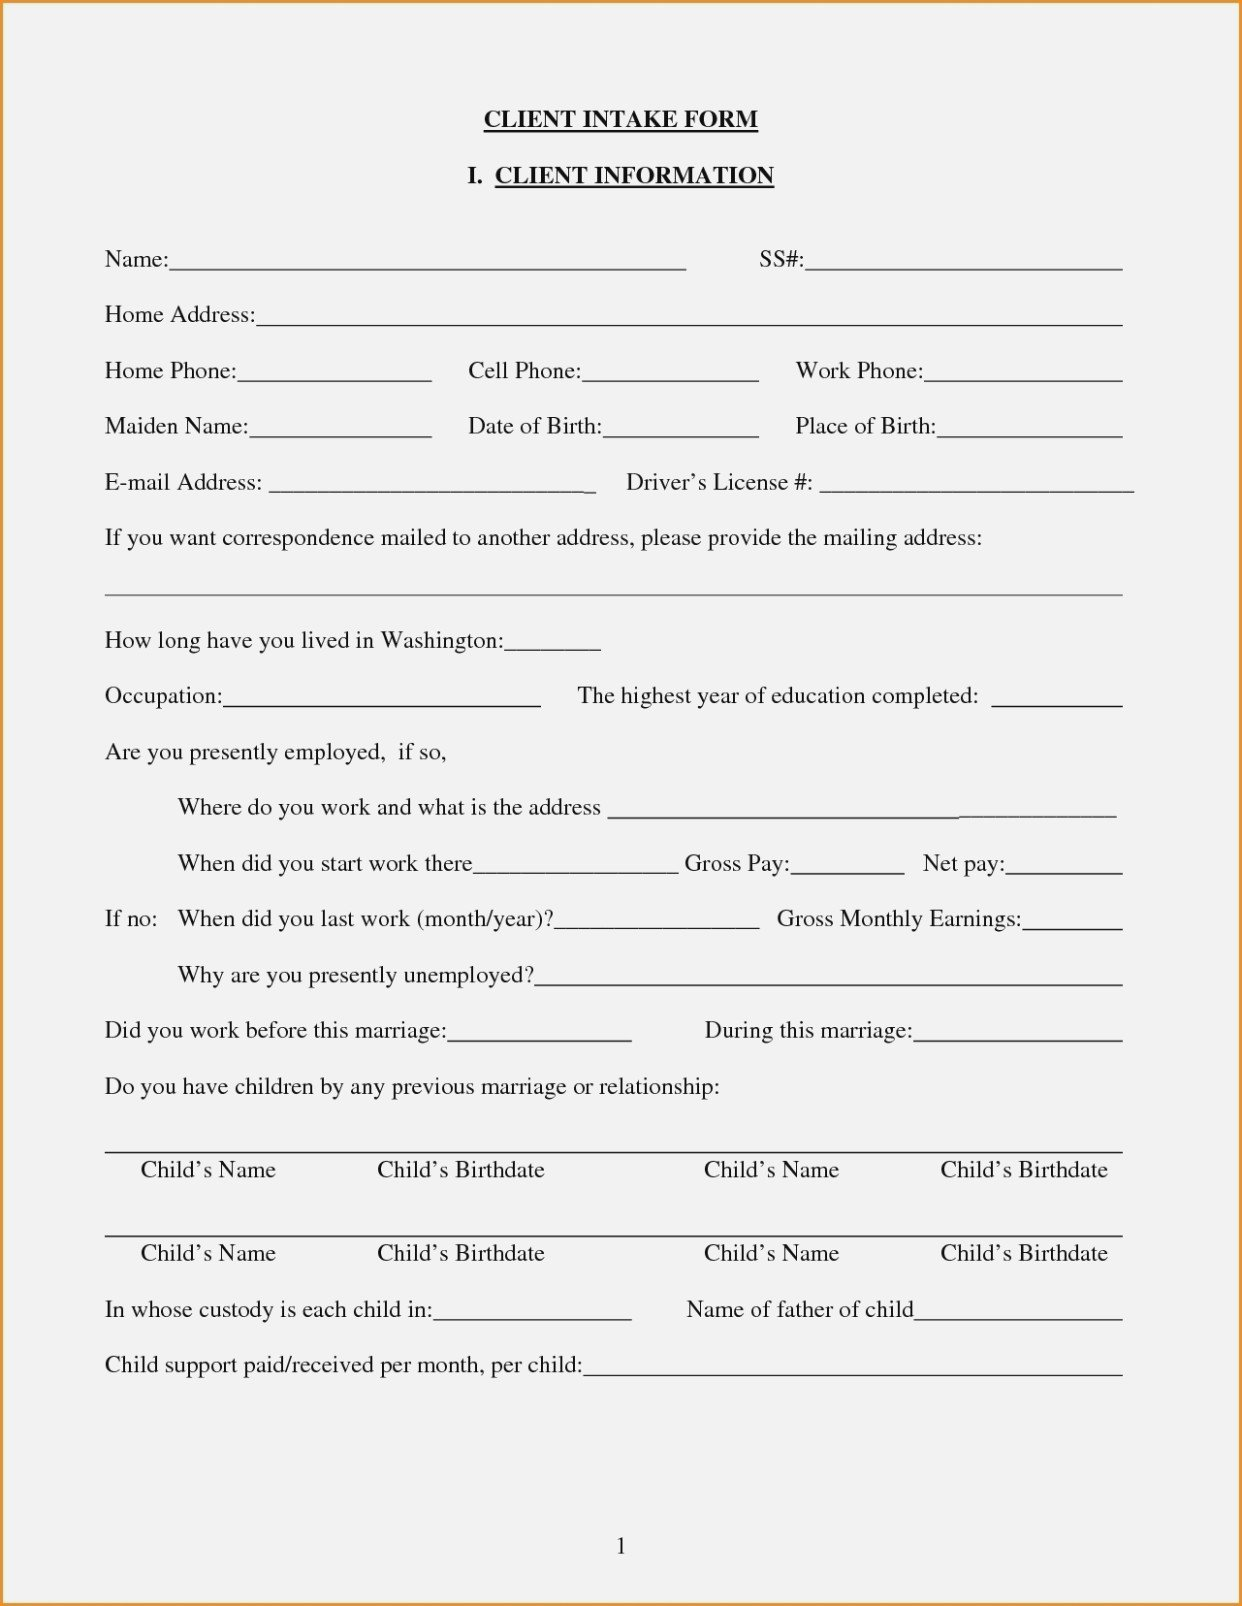 Client Intake form Template How to Leave Client Intake